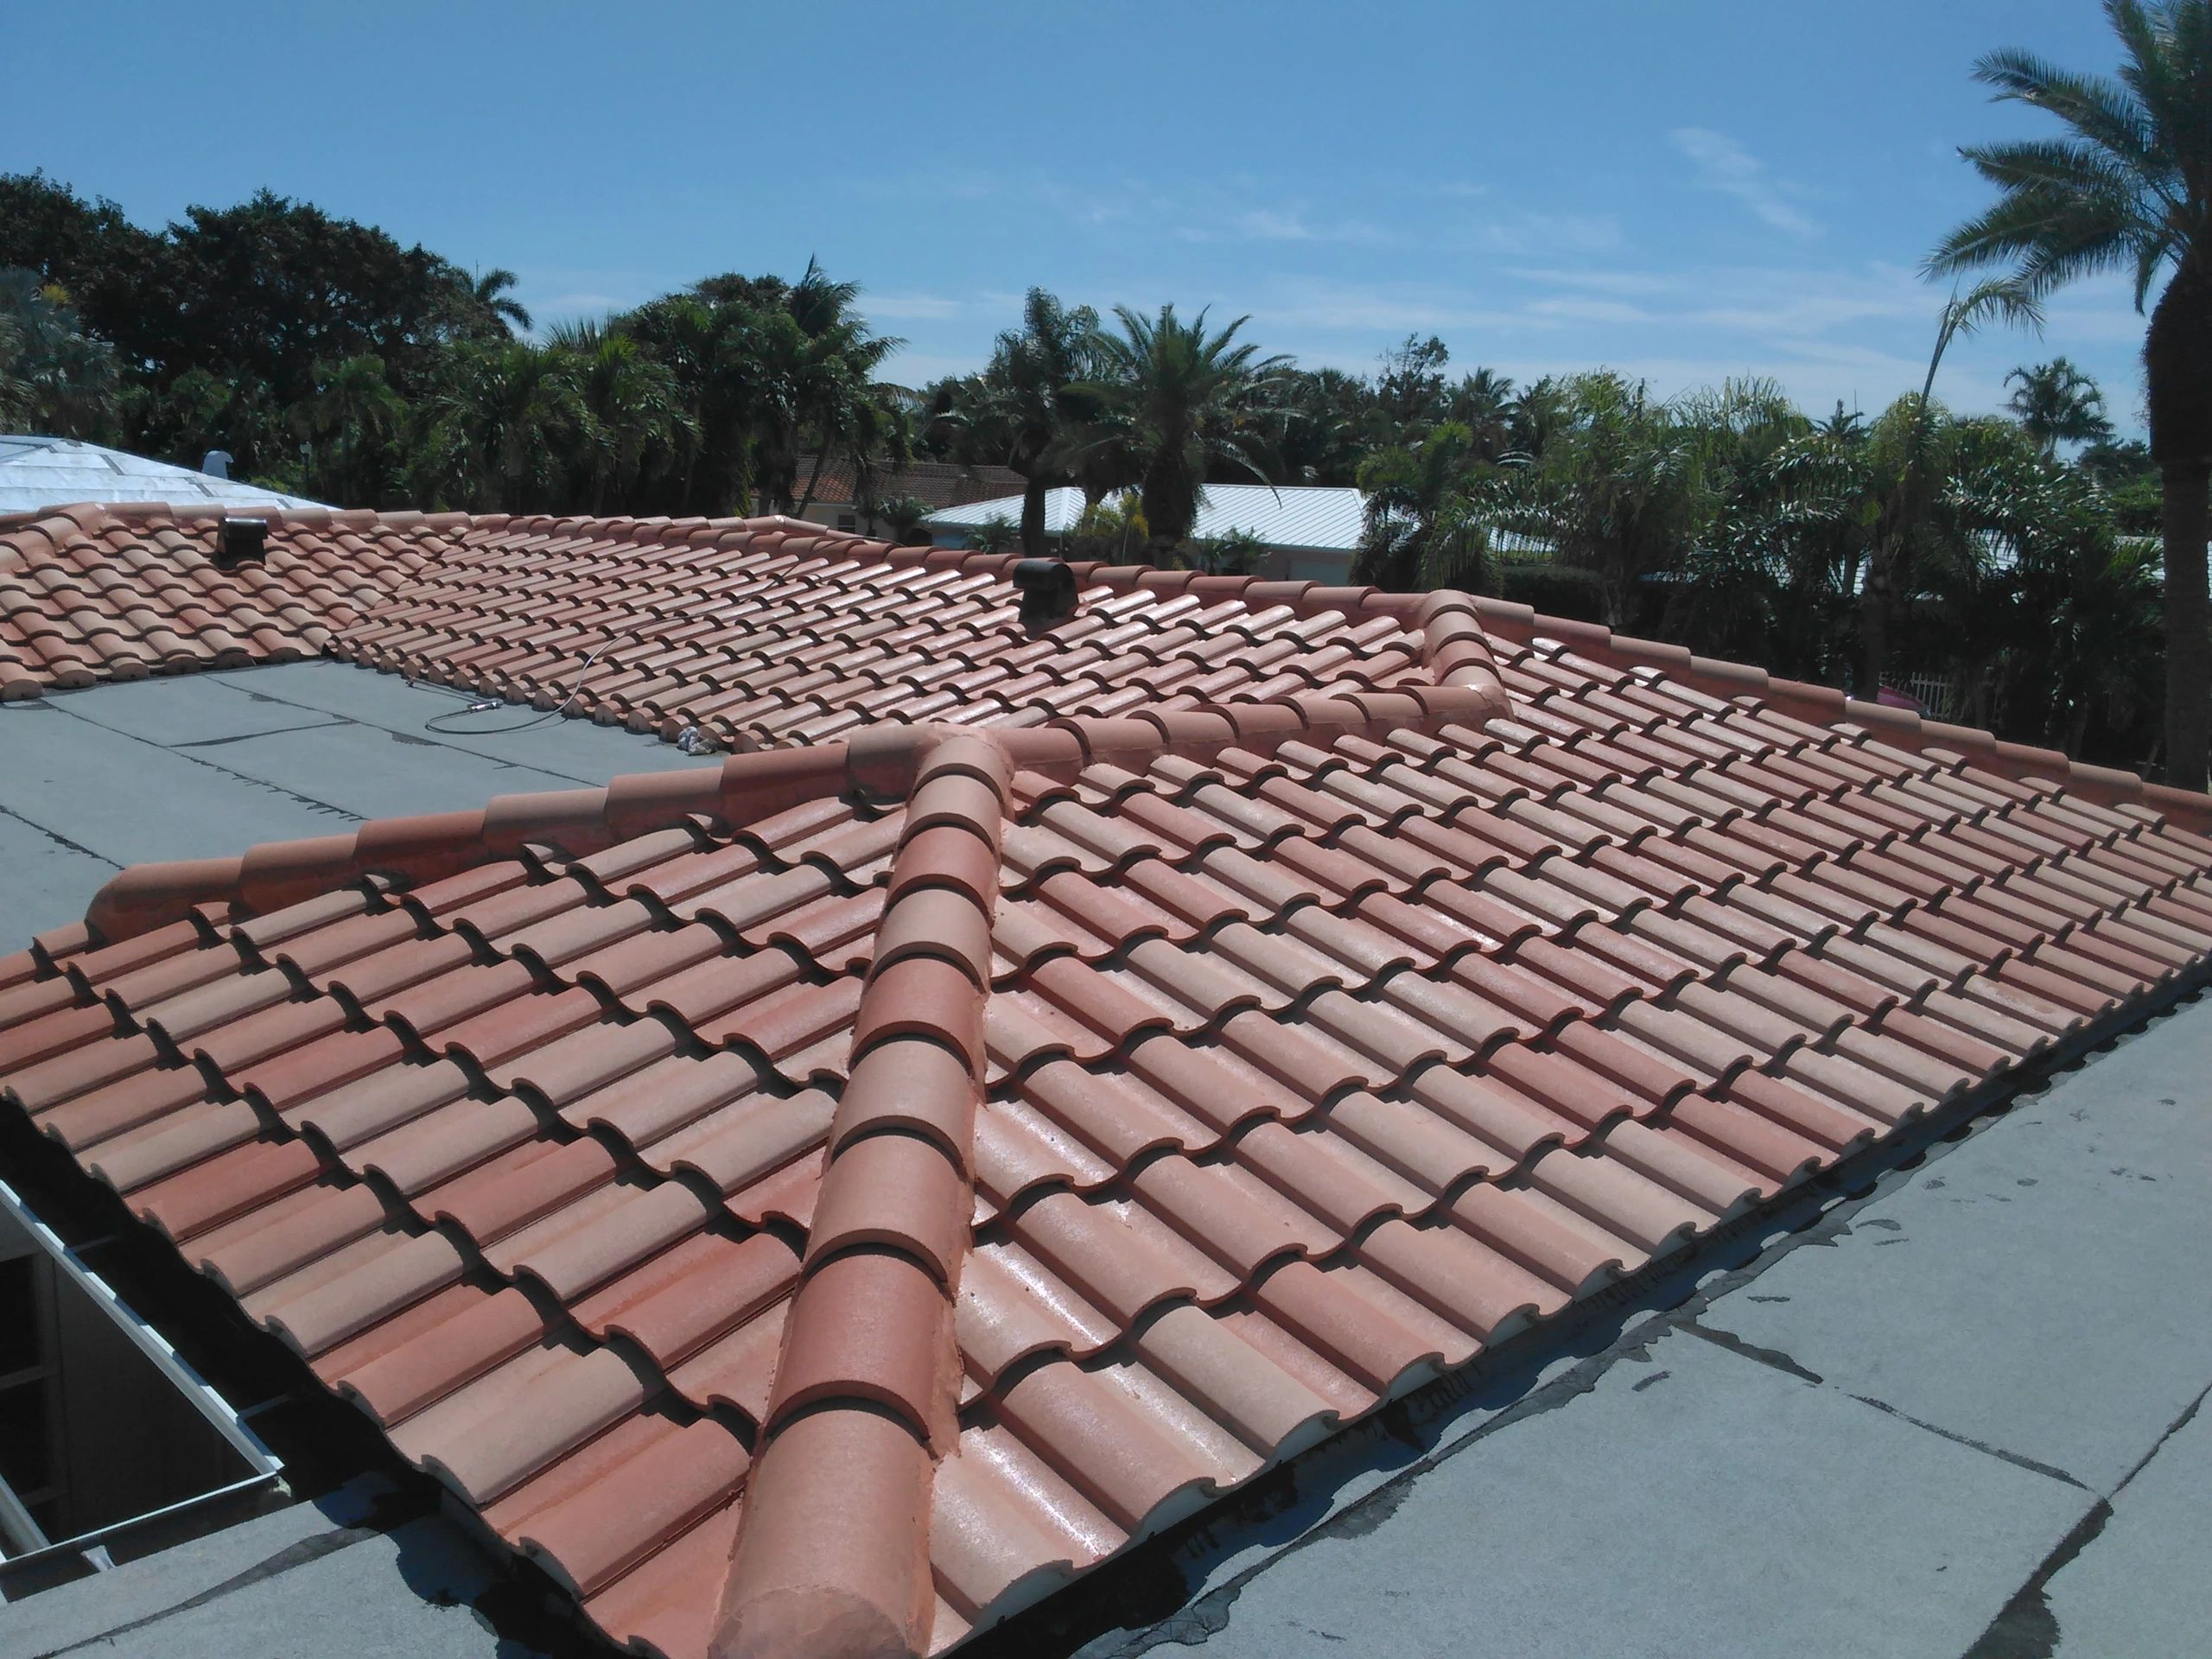 Barrel Tile Roof '  Soft Wash Chemical Cleaning>  100 %  Acrilc Chrystal Clear  Tile Roof Sealer